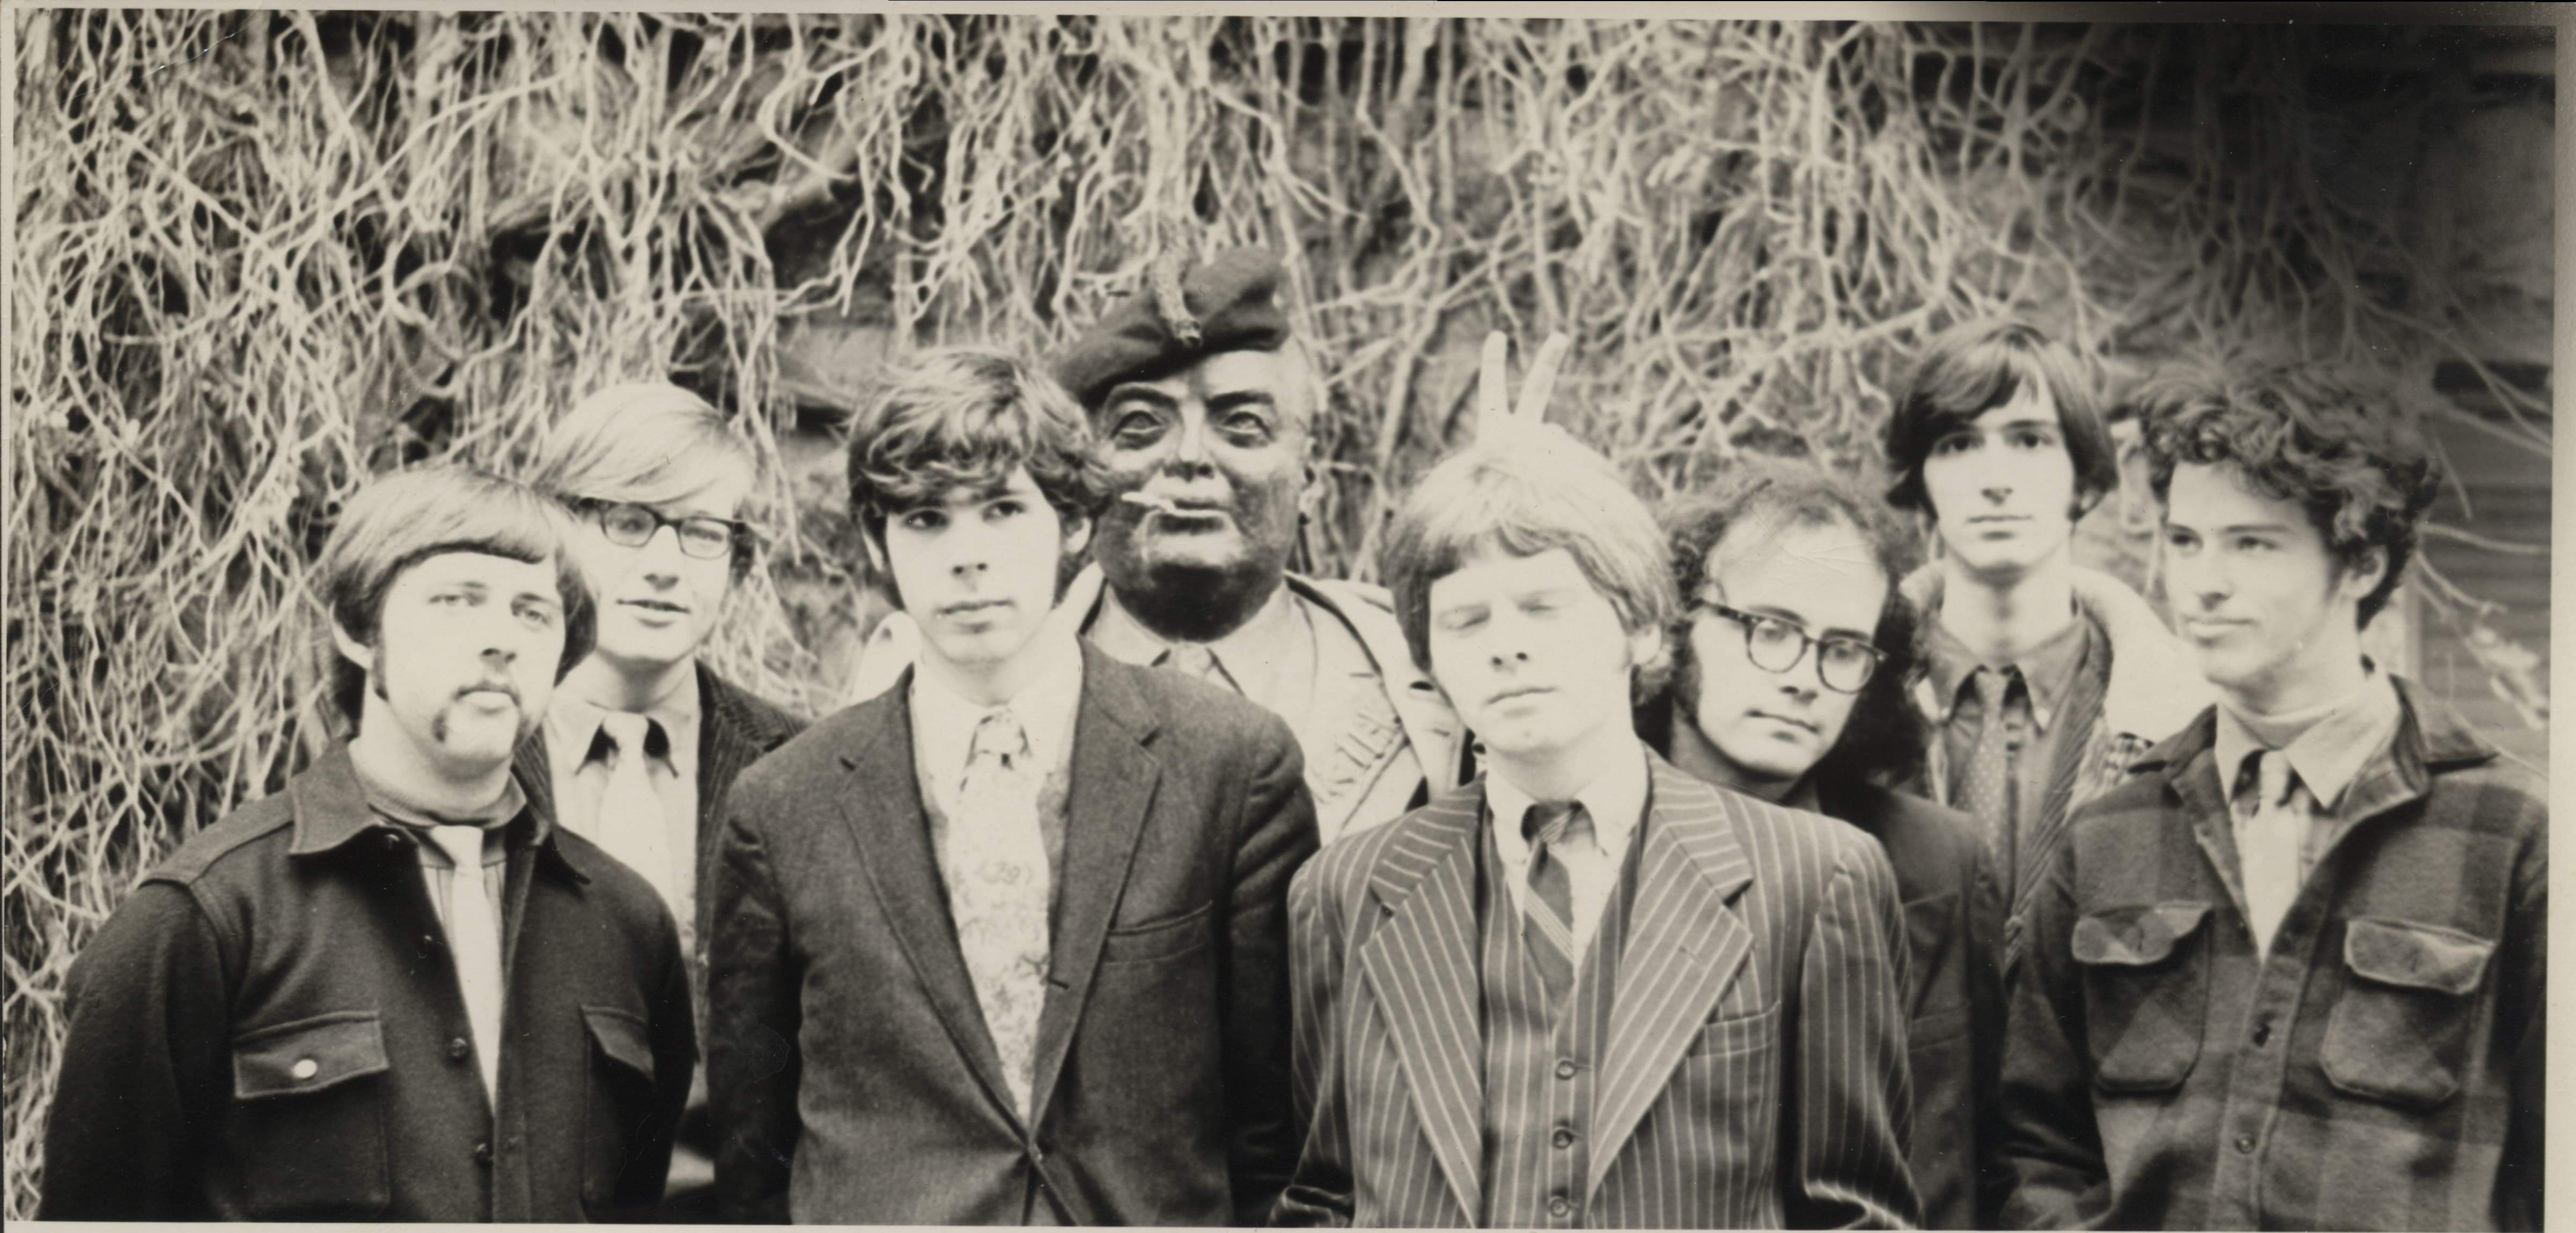 A late-1960s publicity photo for Mrs. Seaman's Sound Band.  Michael Brecker is second on the right.  The bust of Indiana University chancellor Herman B. Wells has received a festive countercultural makeover.  (Photo courtesy of William Paterson University's Brecker Archive, donated by Randy Sandke.)